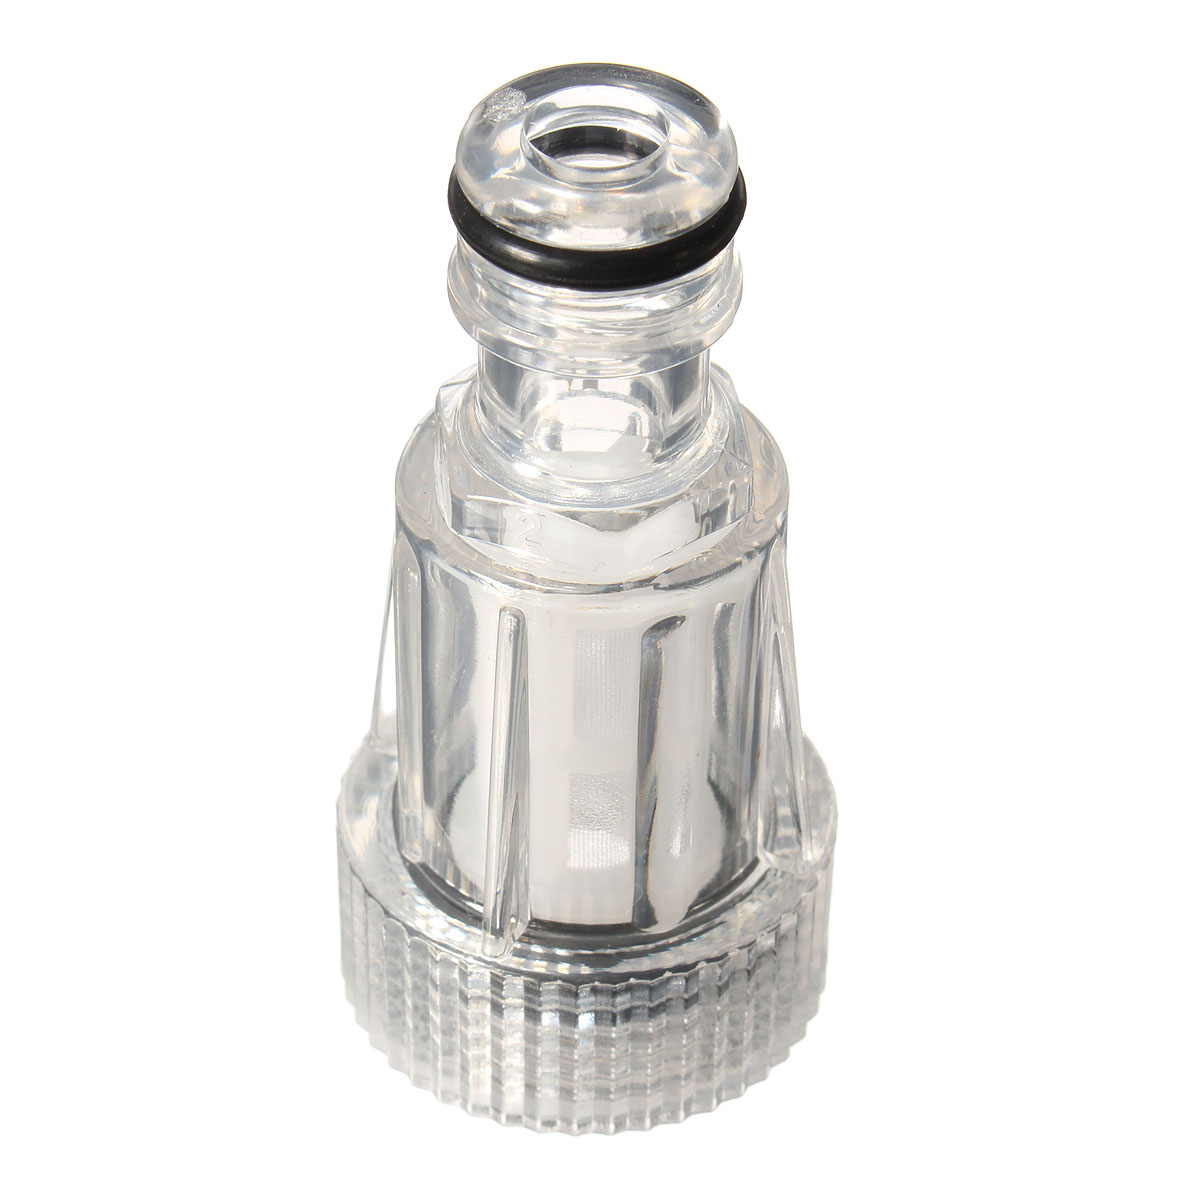 Car Washing Machine Water Filter High-pressure Connection Fitting Pressure Washers For Karcher K2-K7 Series Universal